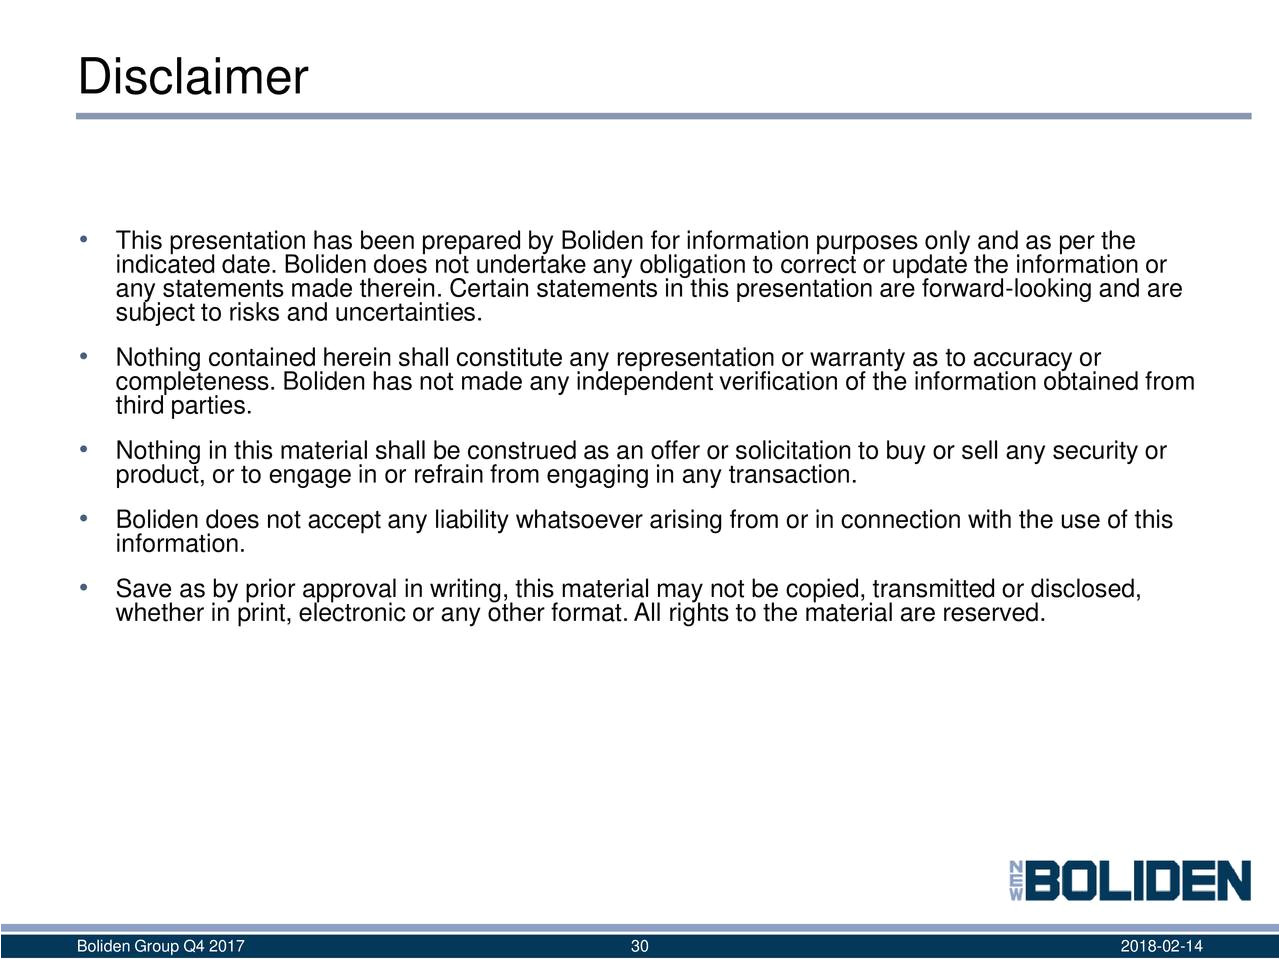 Earnings Disclaimer Template Boliden Ab Adr 2017 Q4 Results Earnings Call Slides